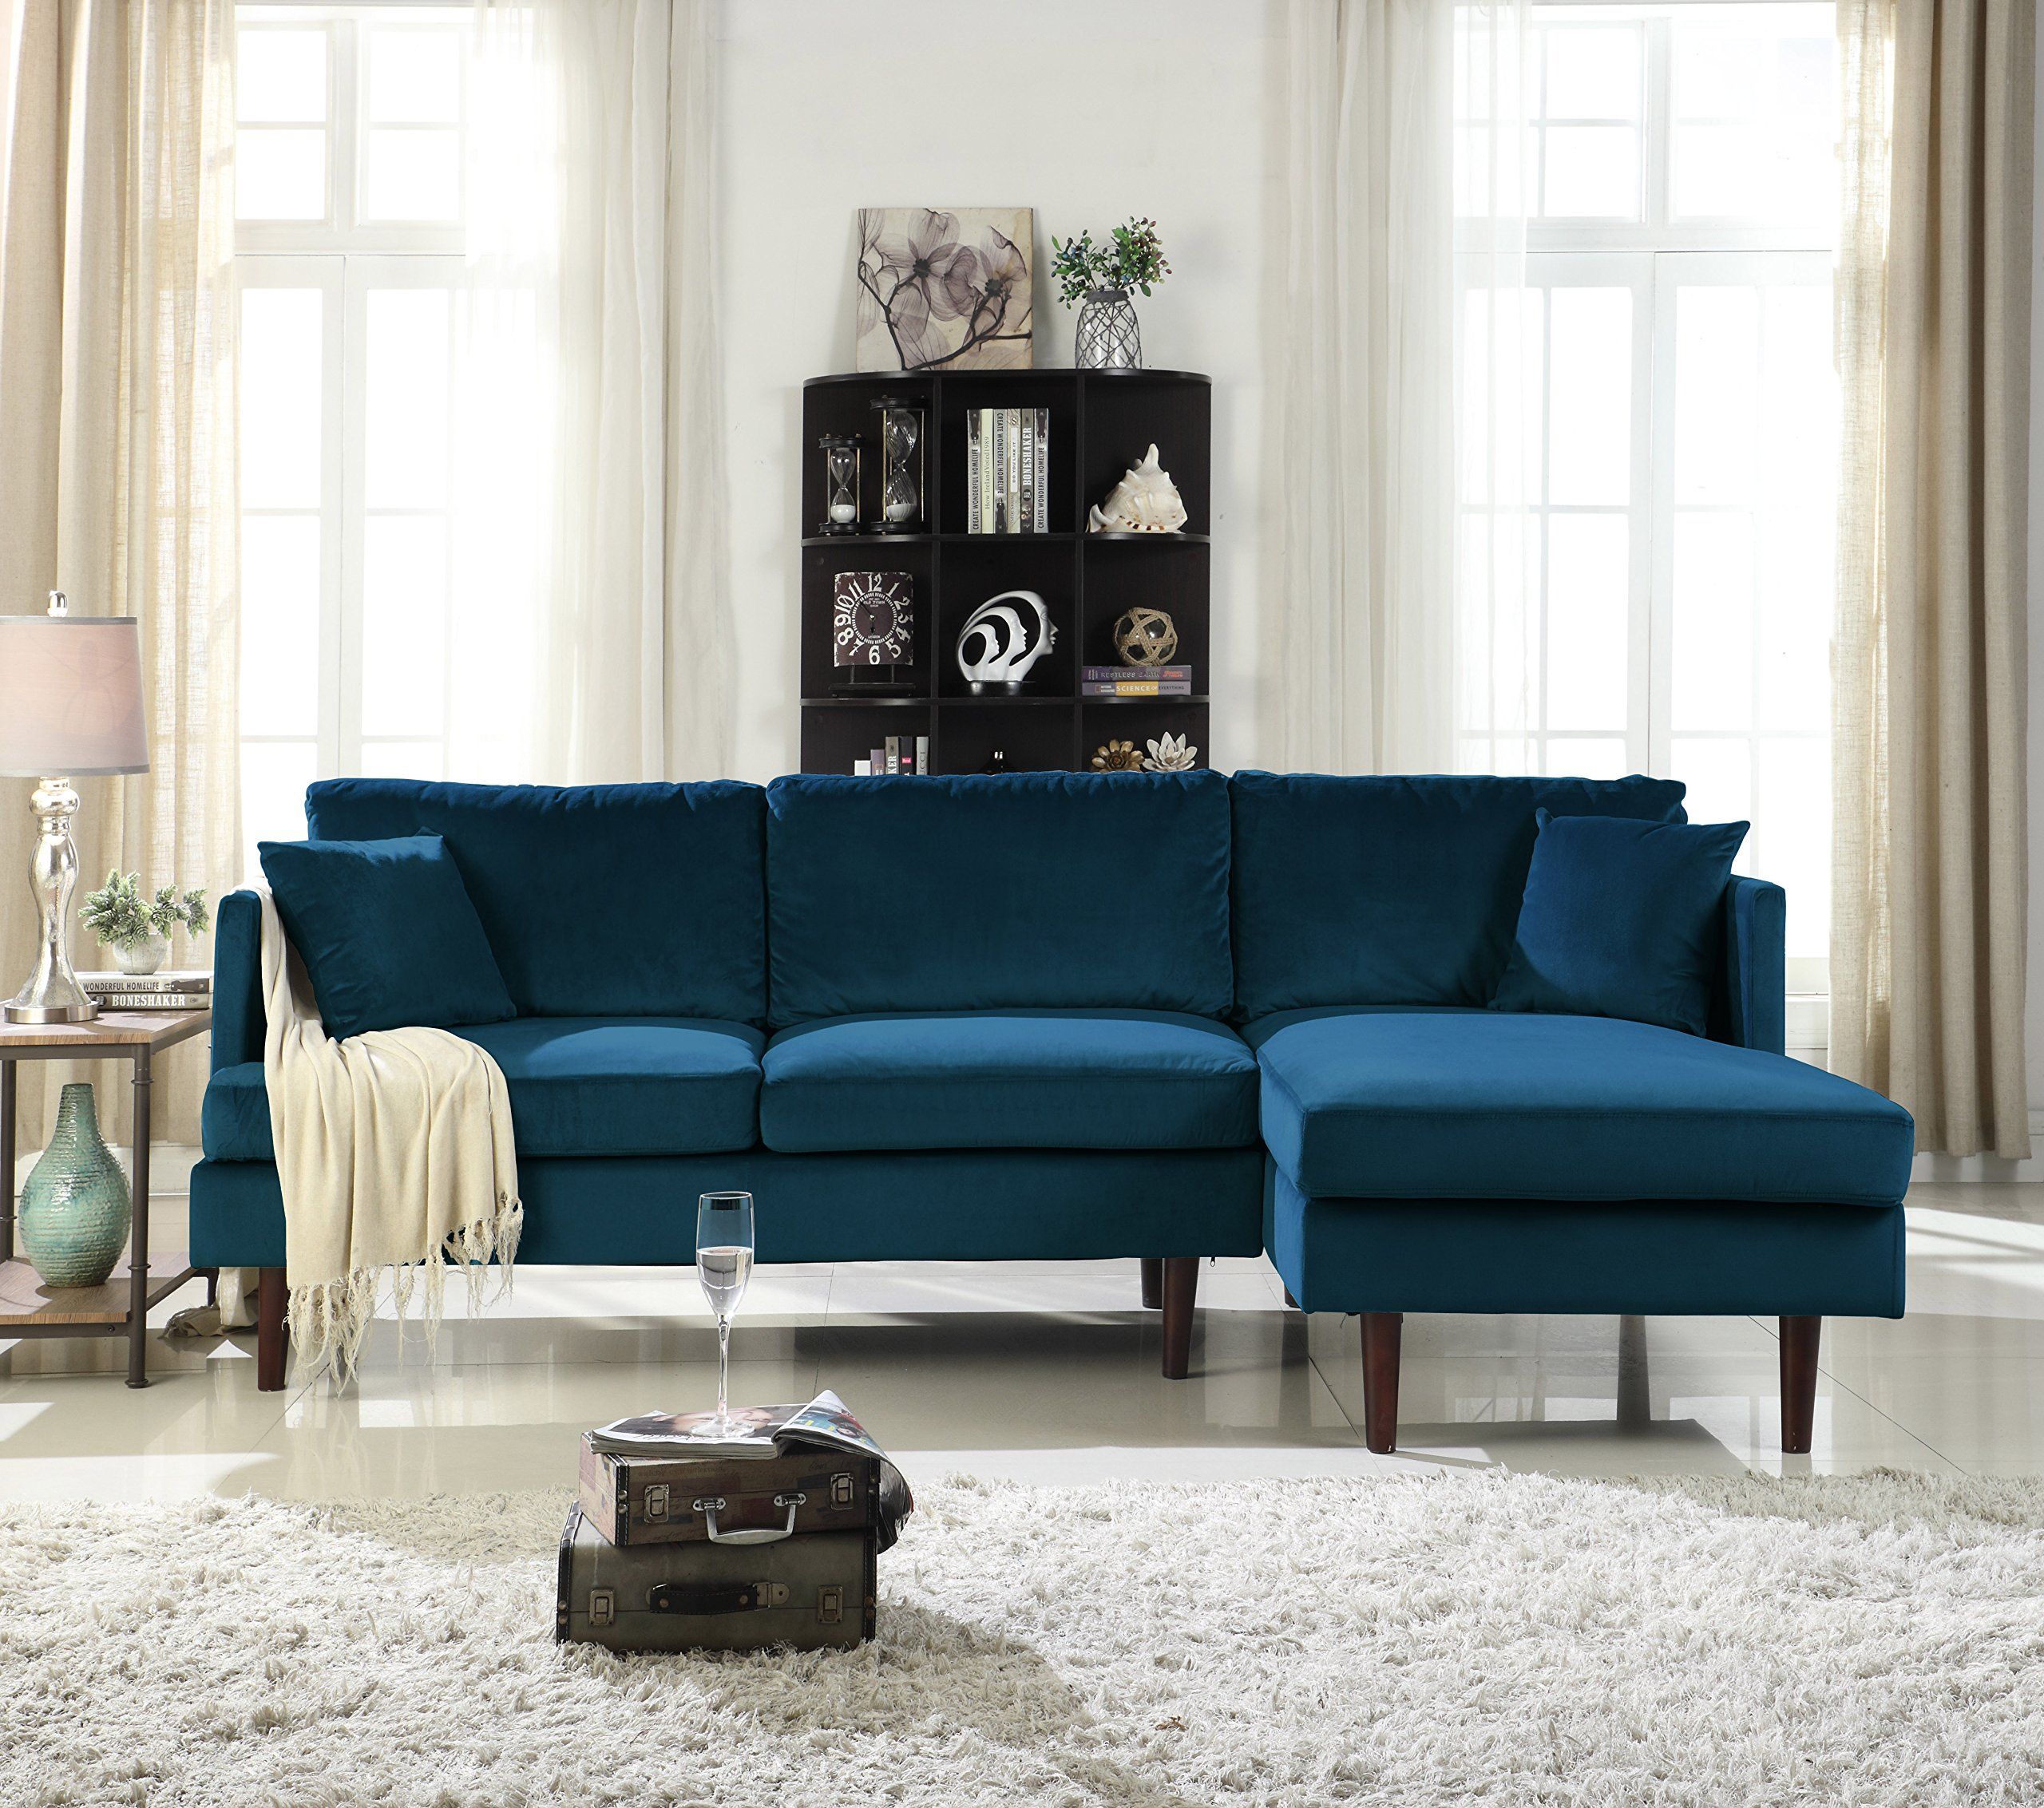 Mid-Century Modern Brush Microfiber Sectional Sofa, L-Shape Couch with Extra Wide Chaise Lounge